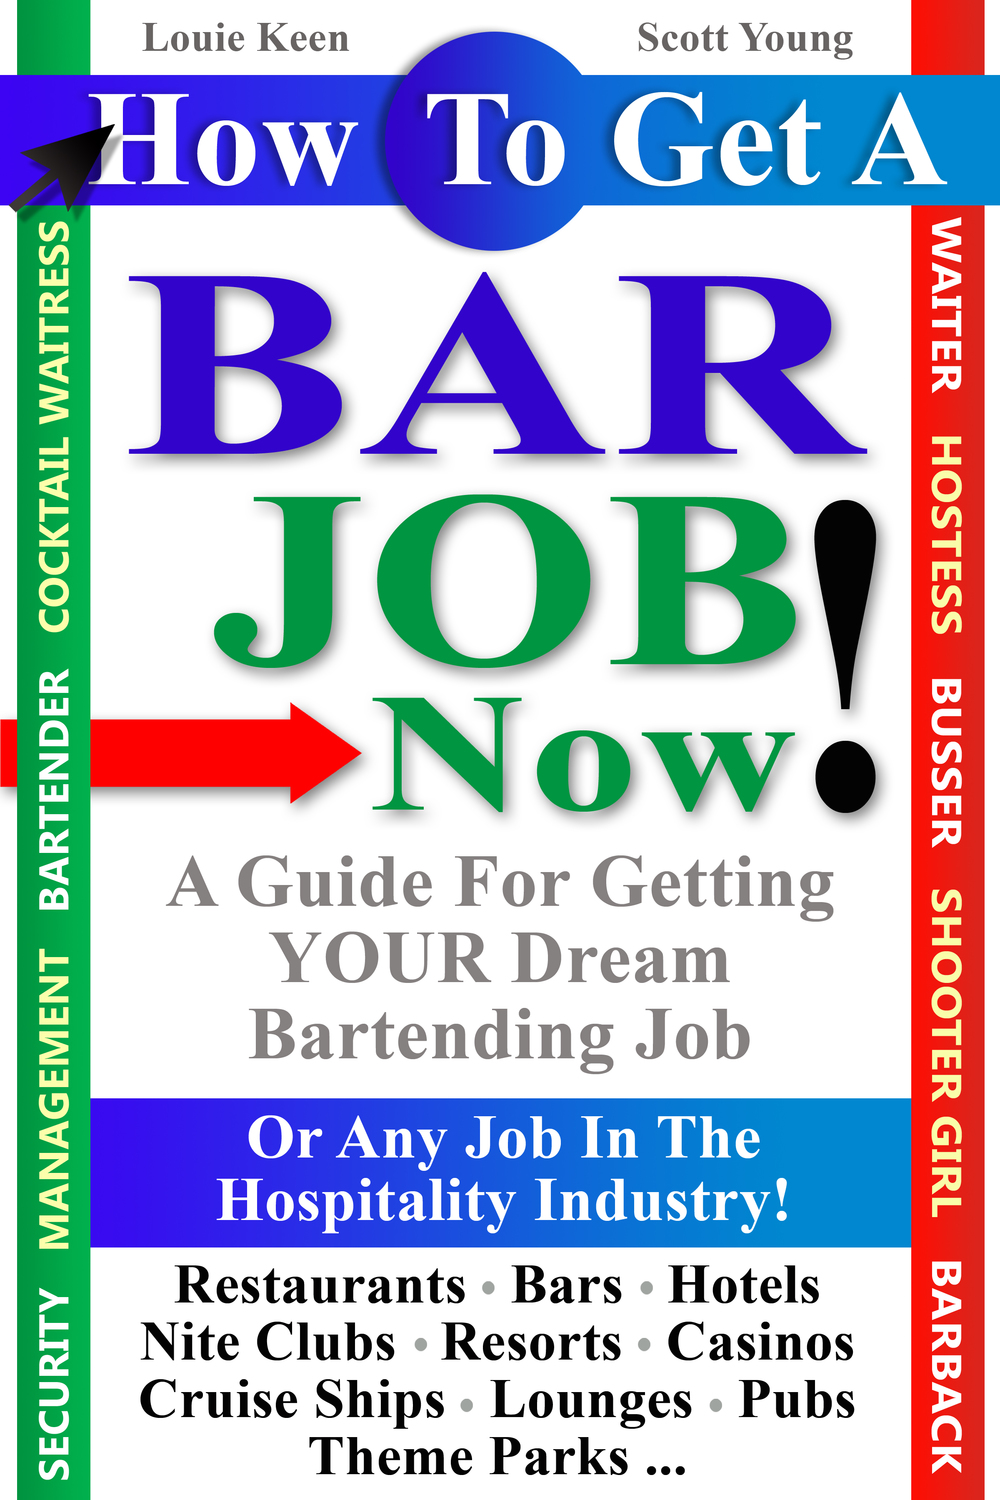 How to - BAR JOB NOW.jpg